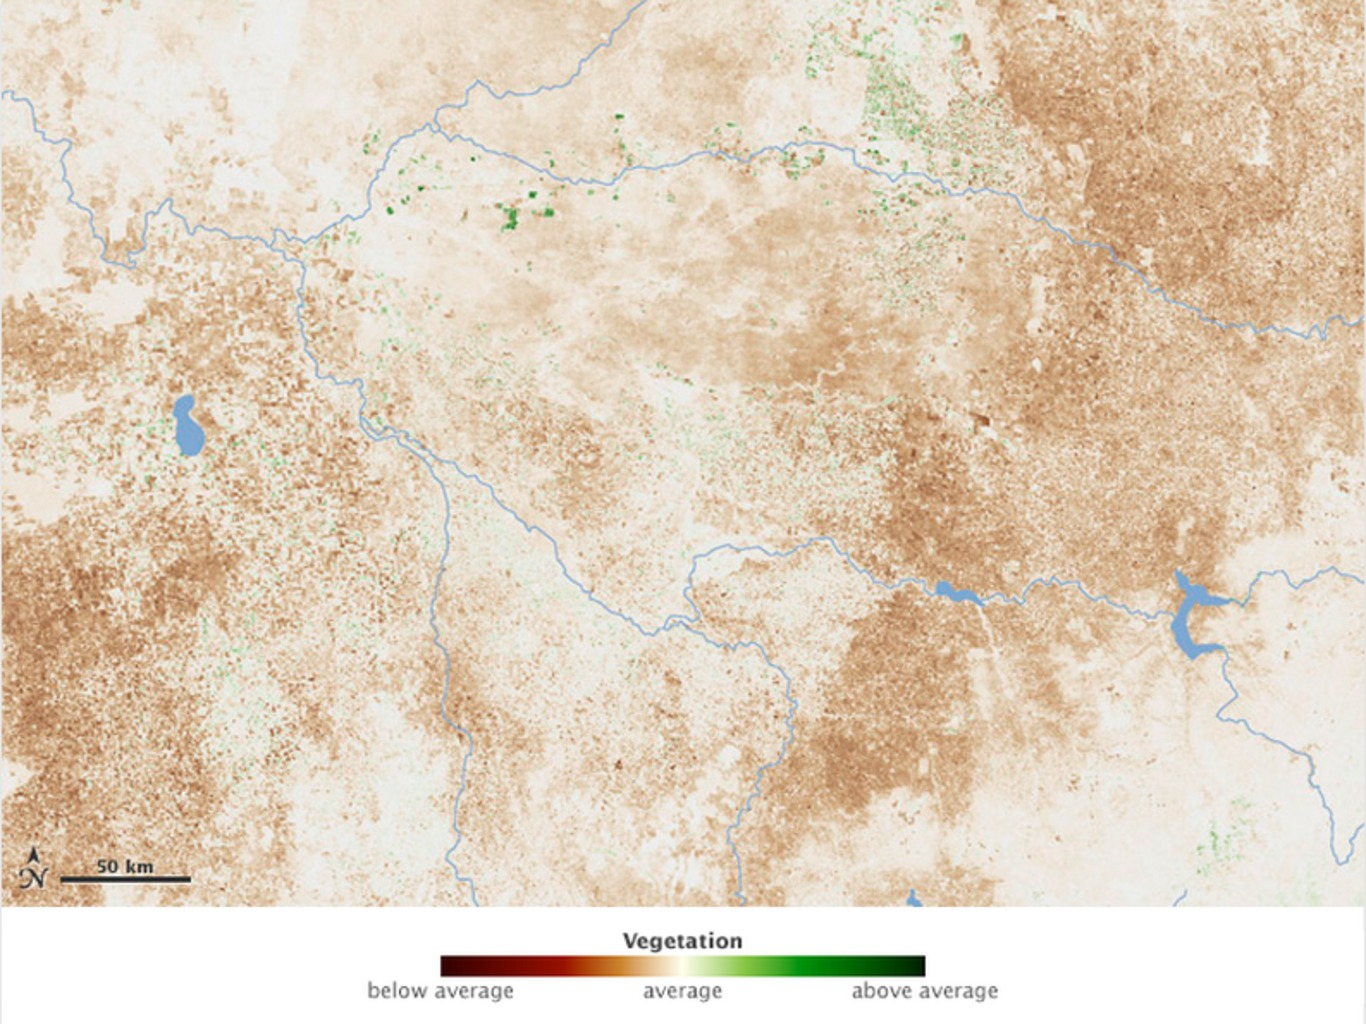 The same region in September 2006. This and the image above show how growing conditions compared to average mid-September conditions over 2000 to 2011. See more images here: http://1.usa.gov/RSMka6 NASA, CC BY-NC-ND